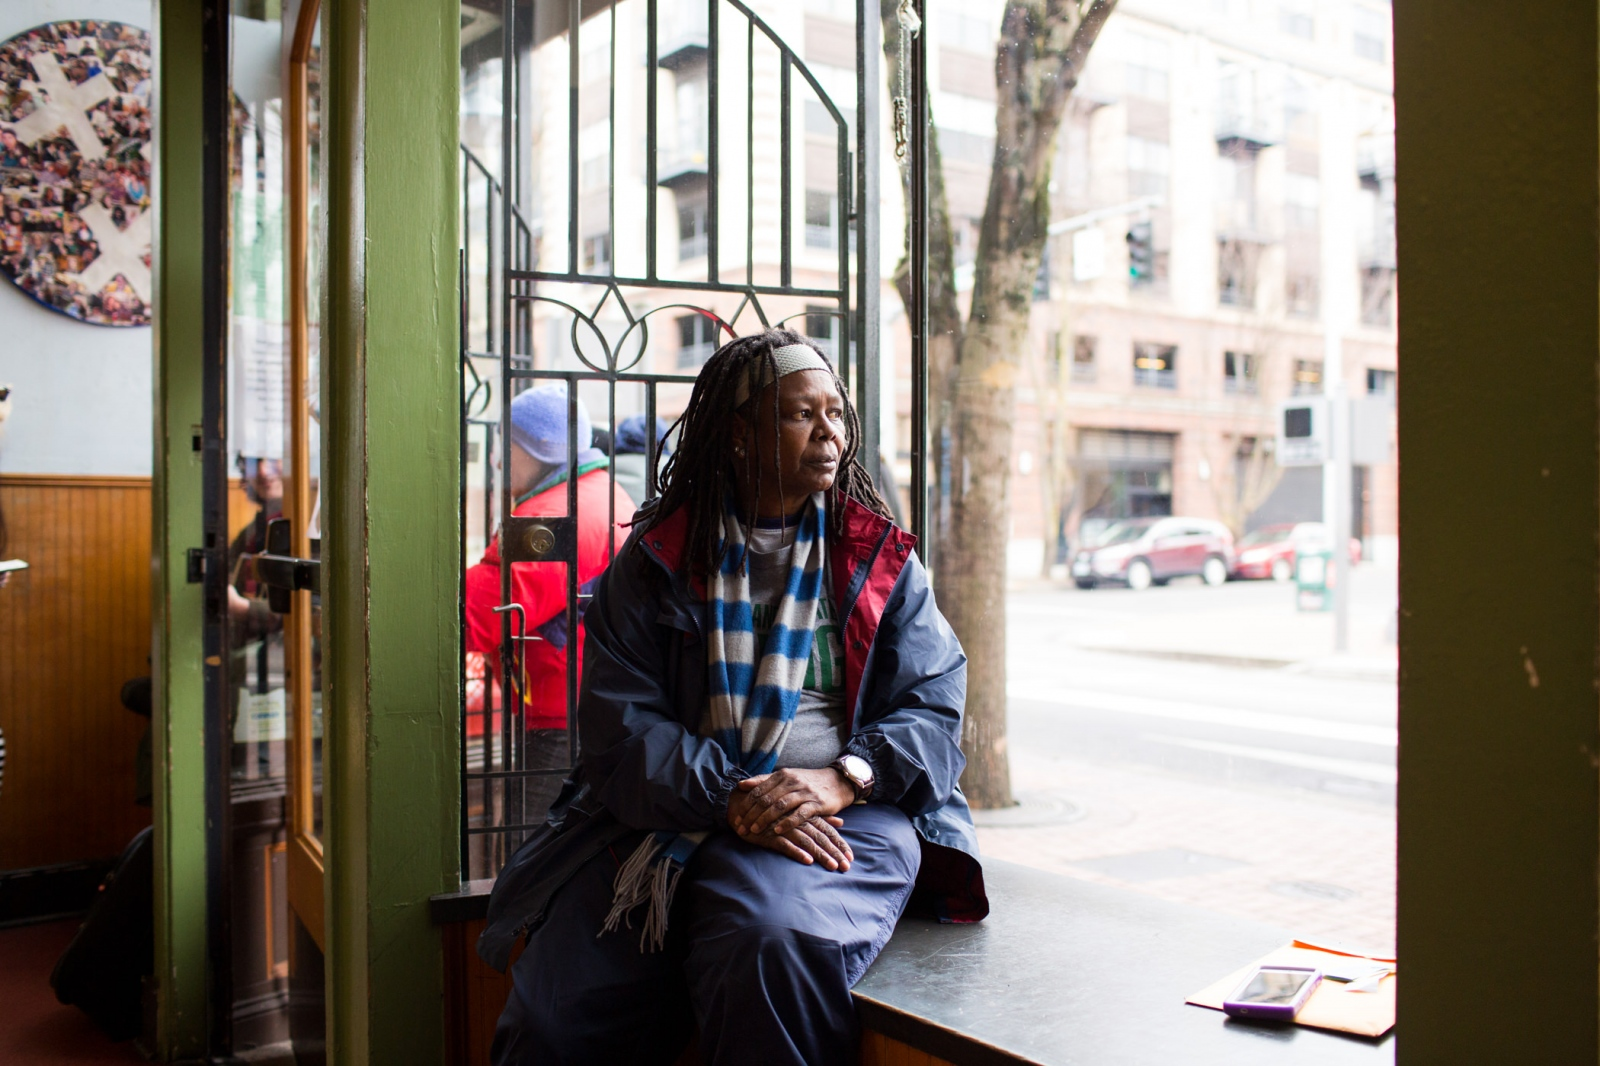 Janice Mack, 62, at the non-profit cafe Sisters of the Road in Portland.  'Homeless at Christmas' for the Guardian